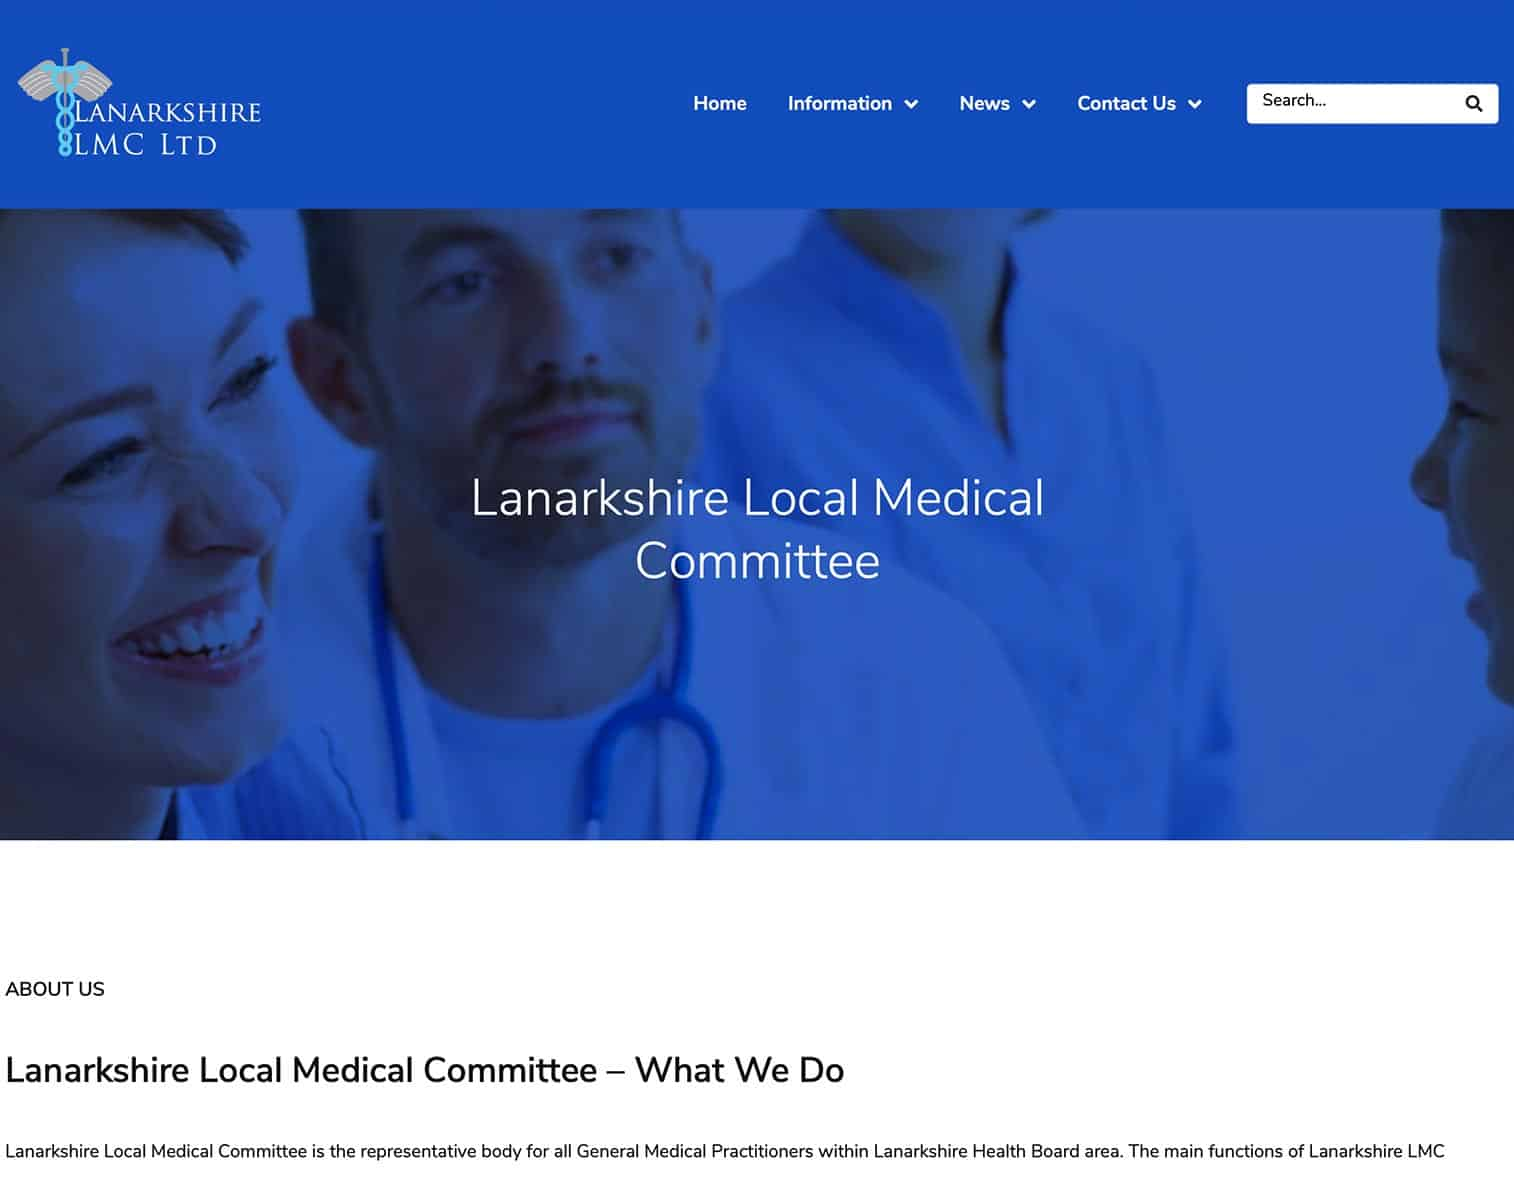 Lanarkshire LMC Website